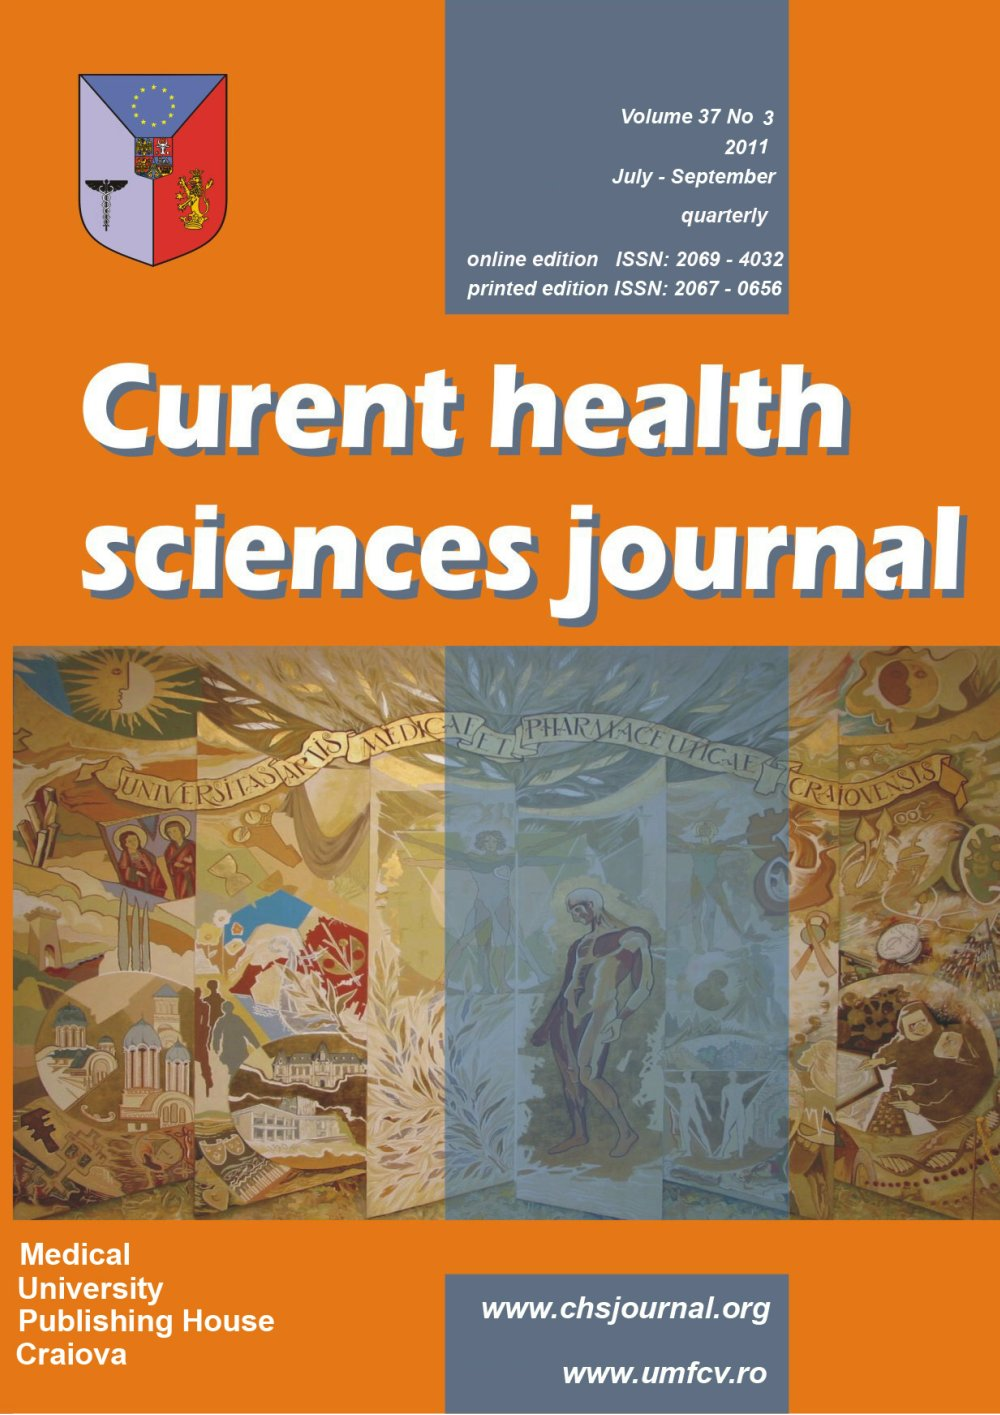 Current Health Sciences Journal, vol. 37 no. 3, 2011